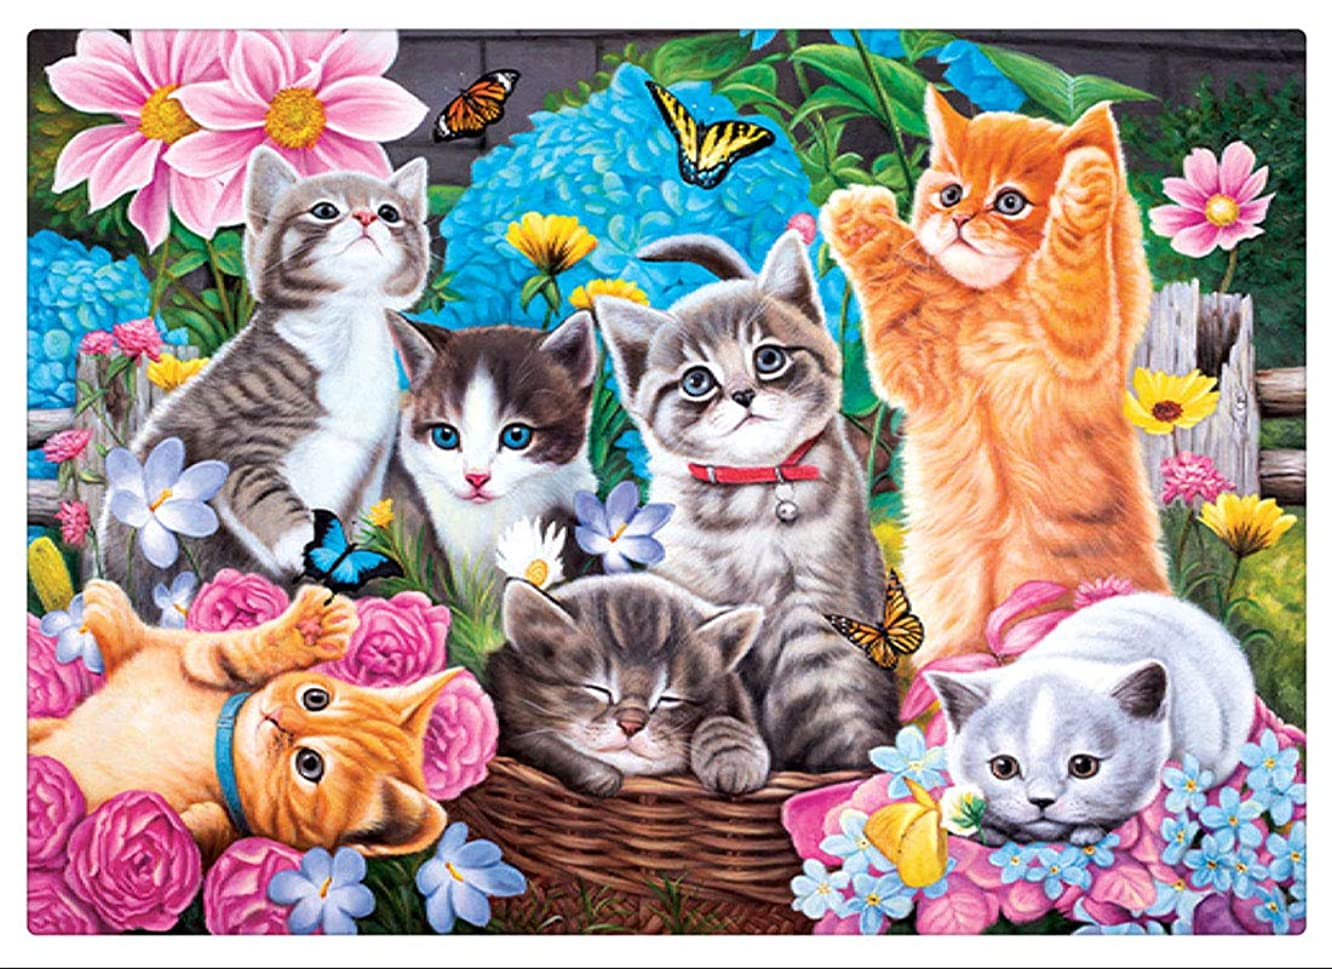 KoKoWill DIY 5D Diamond Painting Kit, Full Drill Round Crystal Rhinestone Embroidery Cross Stitch Home Wall Décor Arts Craft Canvas,Cute Kitten Cats,15.75 x 11.81 inch